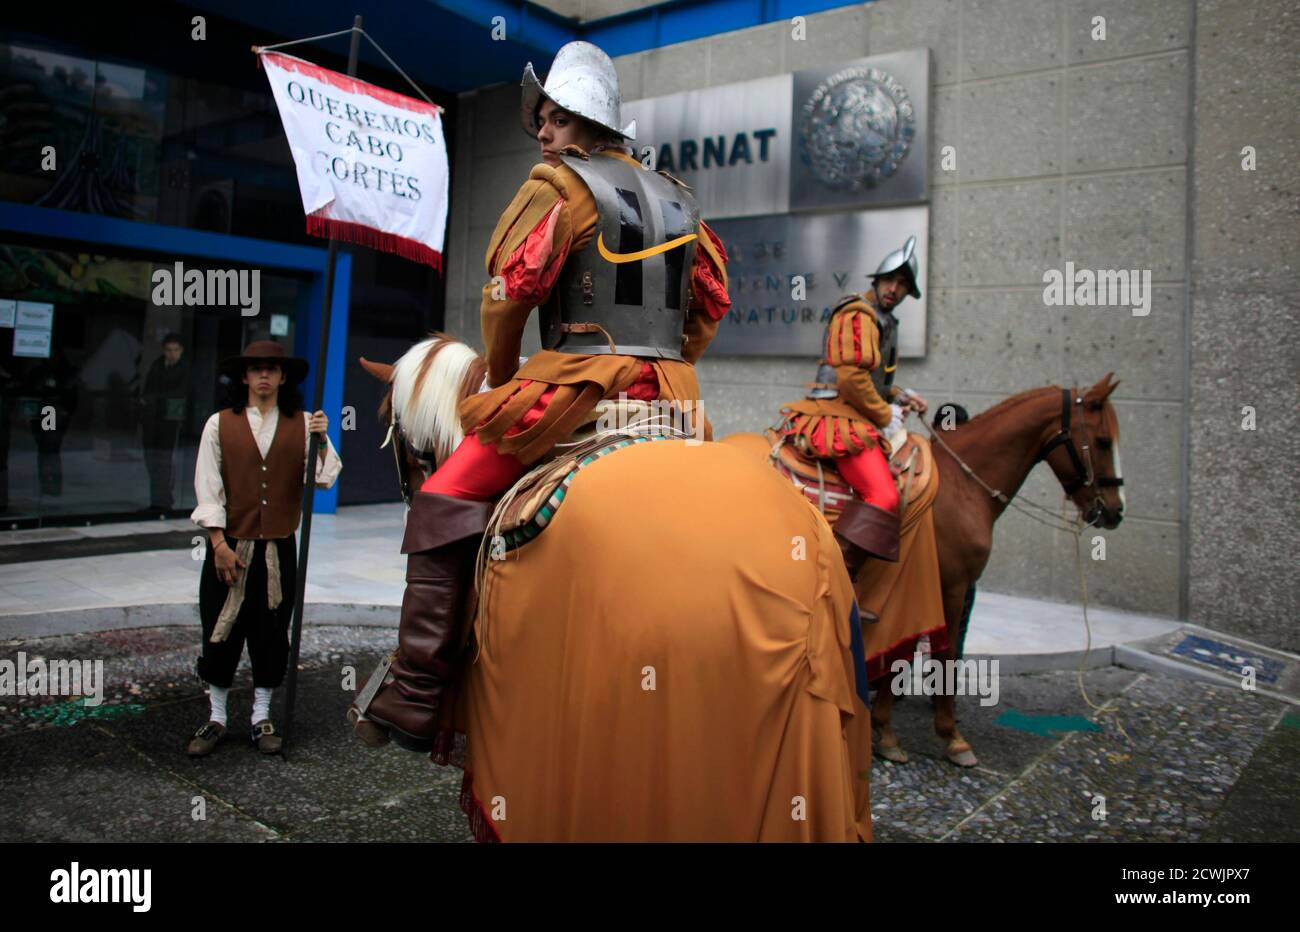 Greenpeace activists dressed as Spanish conquerors protest against Spanish real estate developer Hansa Urbana outside the Secretary for Environment and Natural Resources office in Mexico City August 25, 2010. Hansa Urbana is planning to build a tourist complex called Cabo Cortez in Baja California, near the Cabo Pulmo nature reserve. REUTERS/Eliana Aponte (MEXICO - Tags: ENVIRONMENT CIVIL UNREST BUSINESS TRAVEL POLITICS) Stock Photo